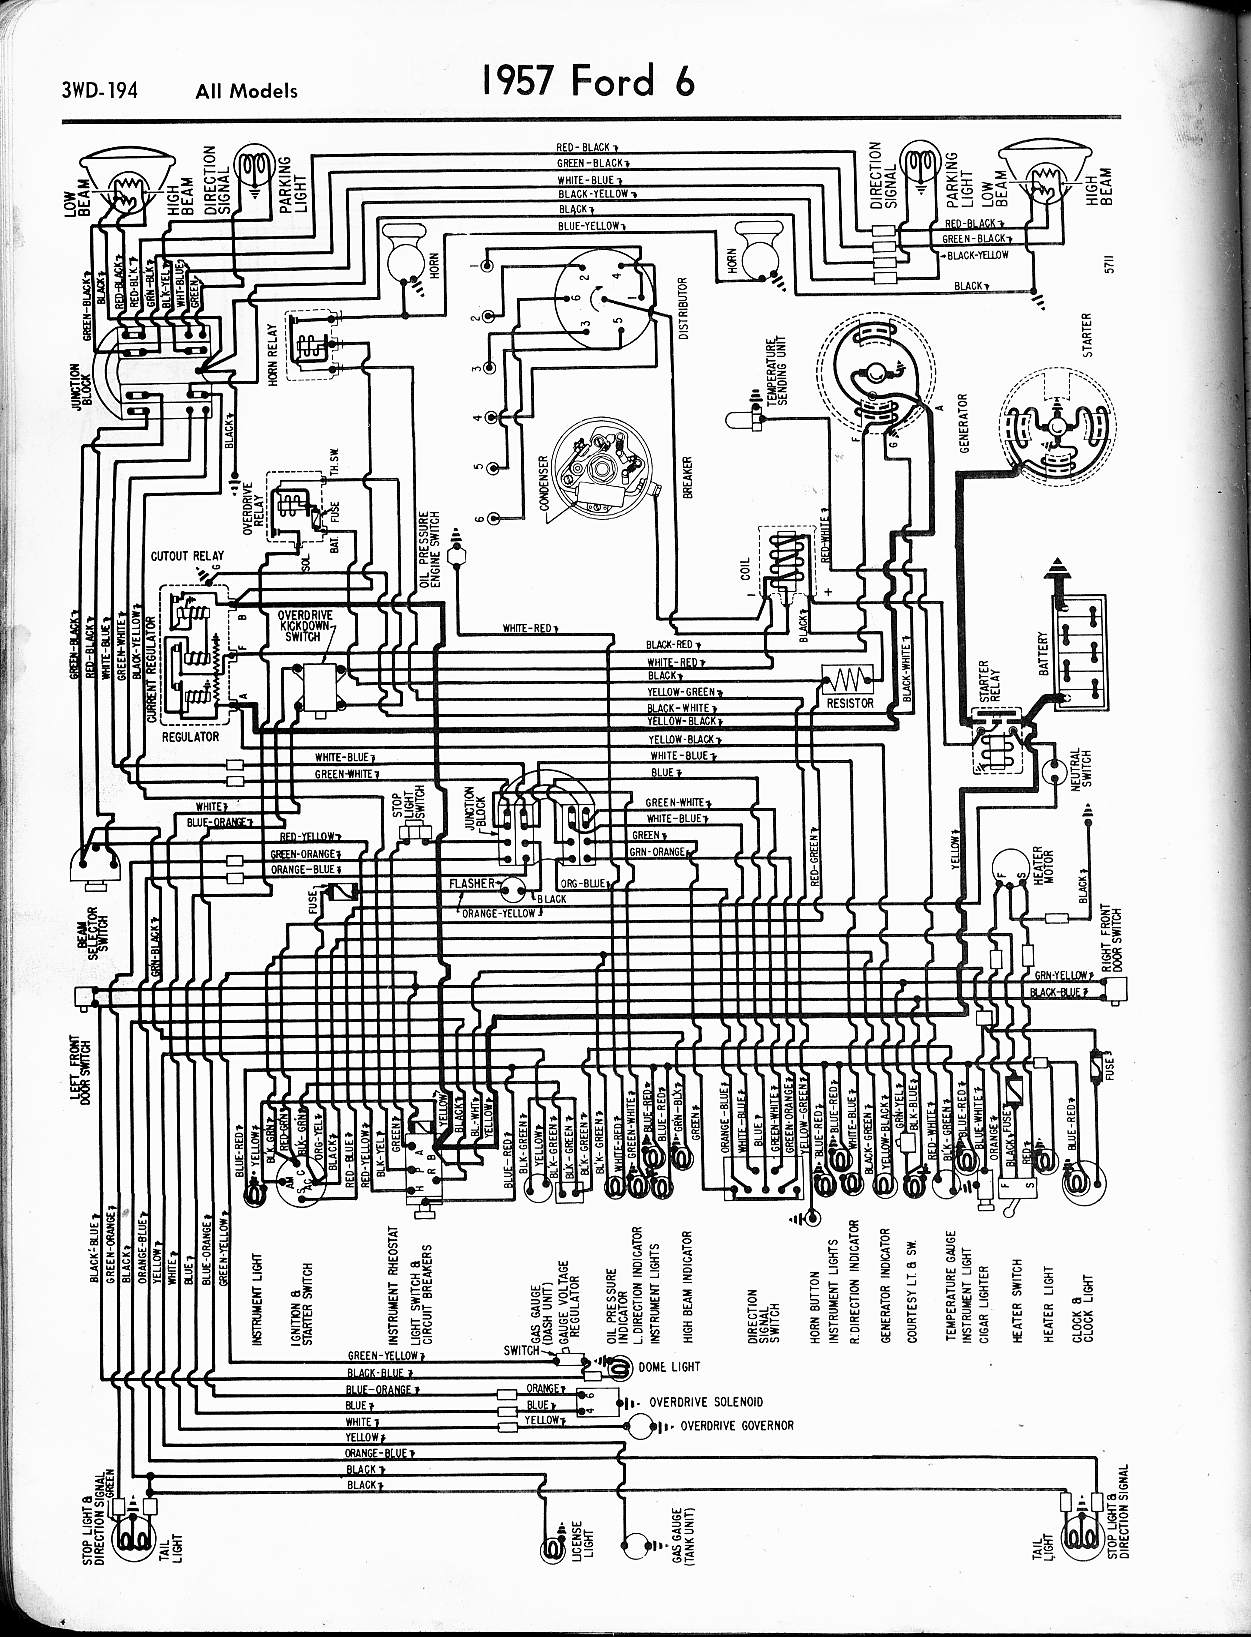 1967 Ford F150 Wiring Diagram Browse Data 2015 F 150 Diagrams Online